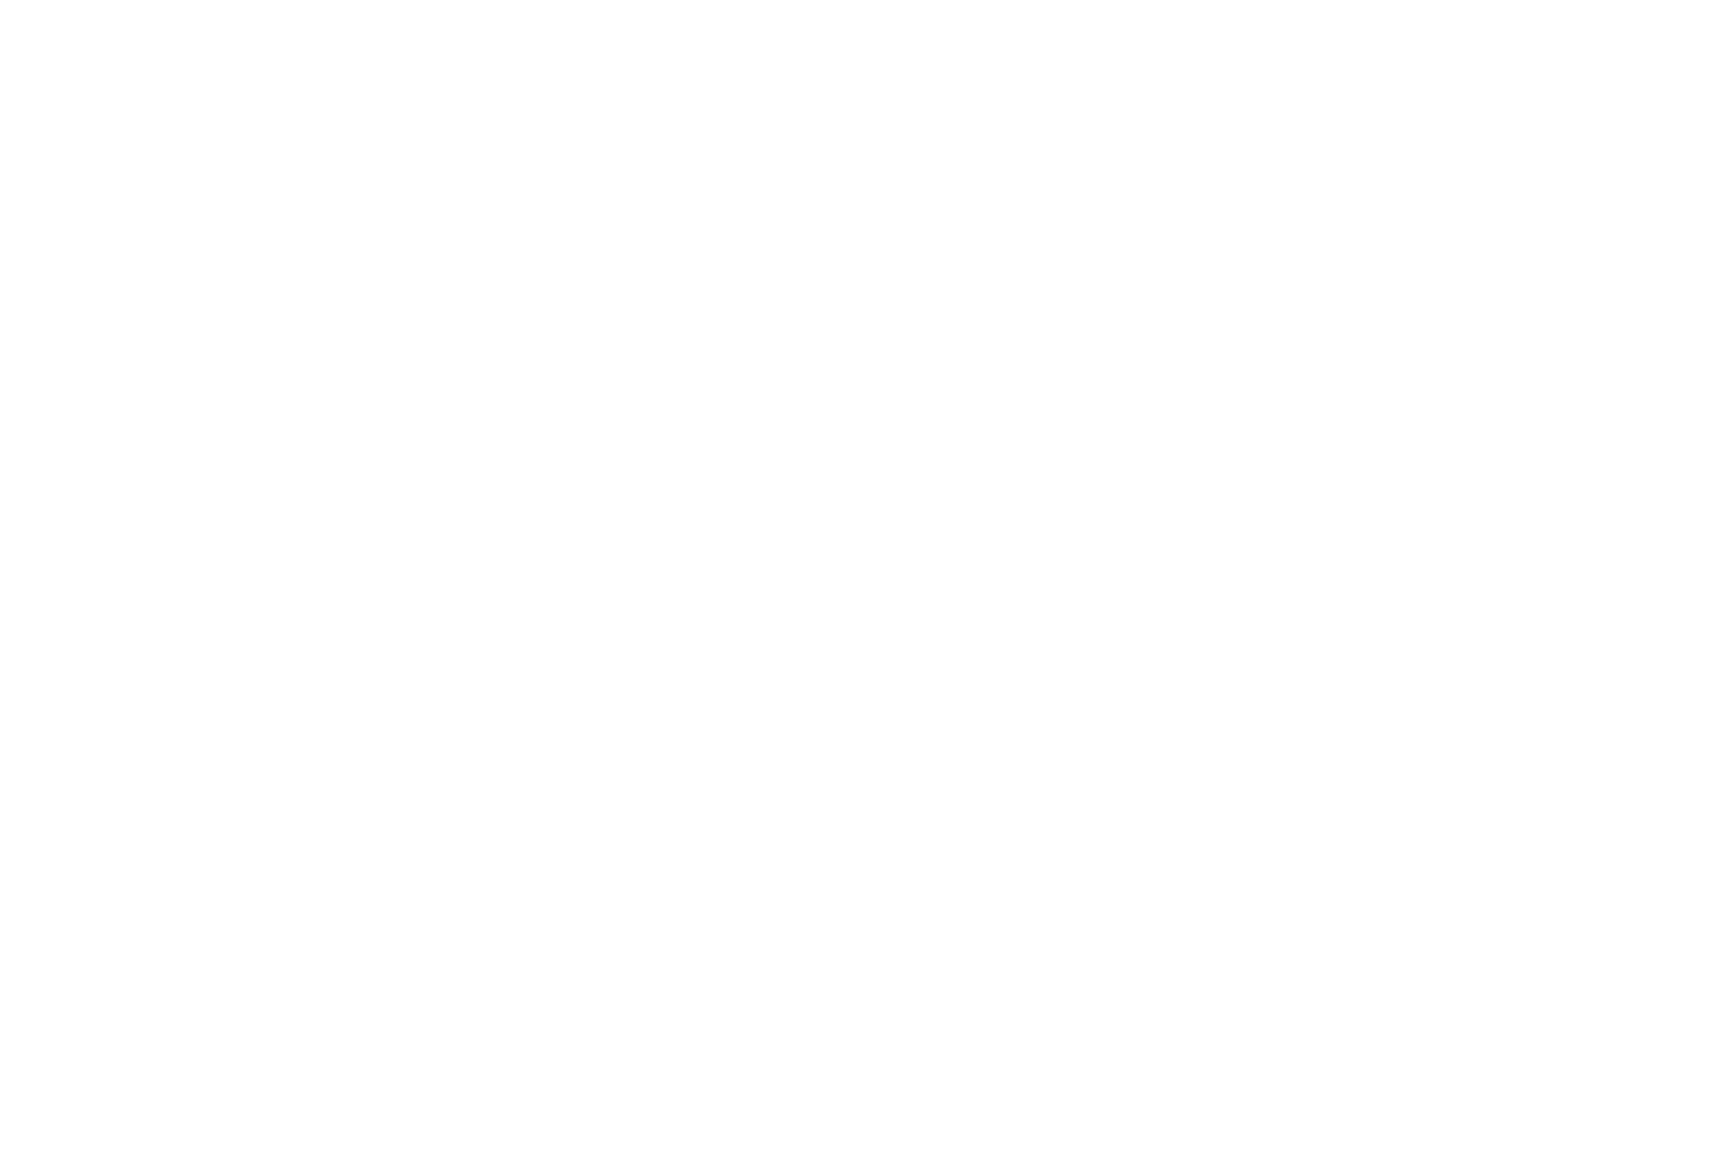 AWARD WINNER Best Live Action Under 15 Minutes - Reel Shorts Film Festival - 2019 (1).png